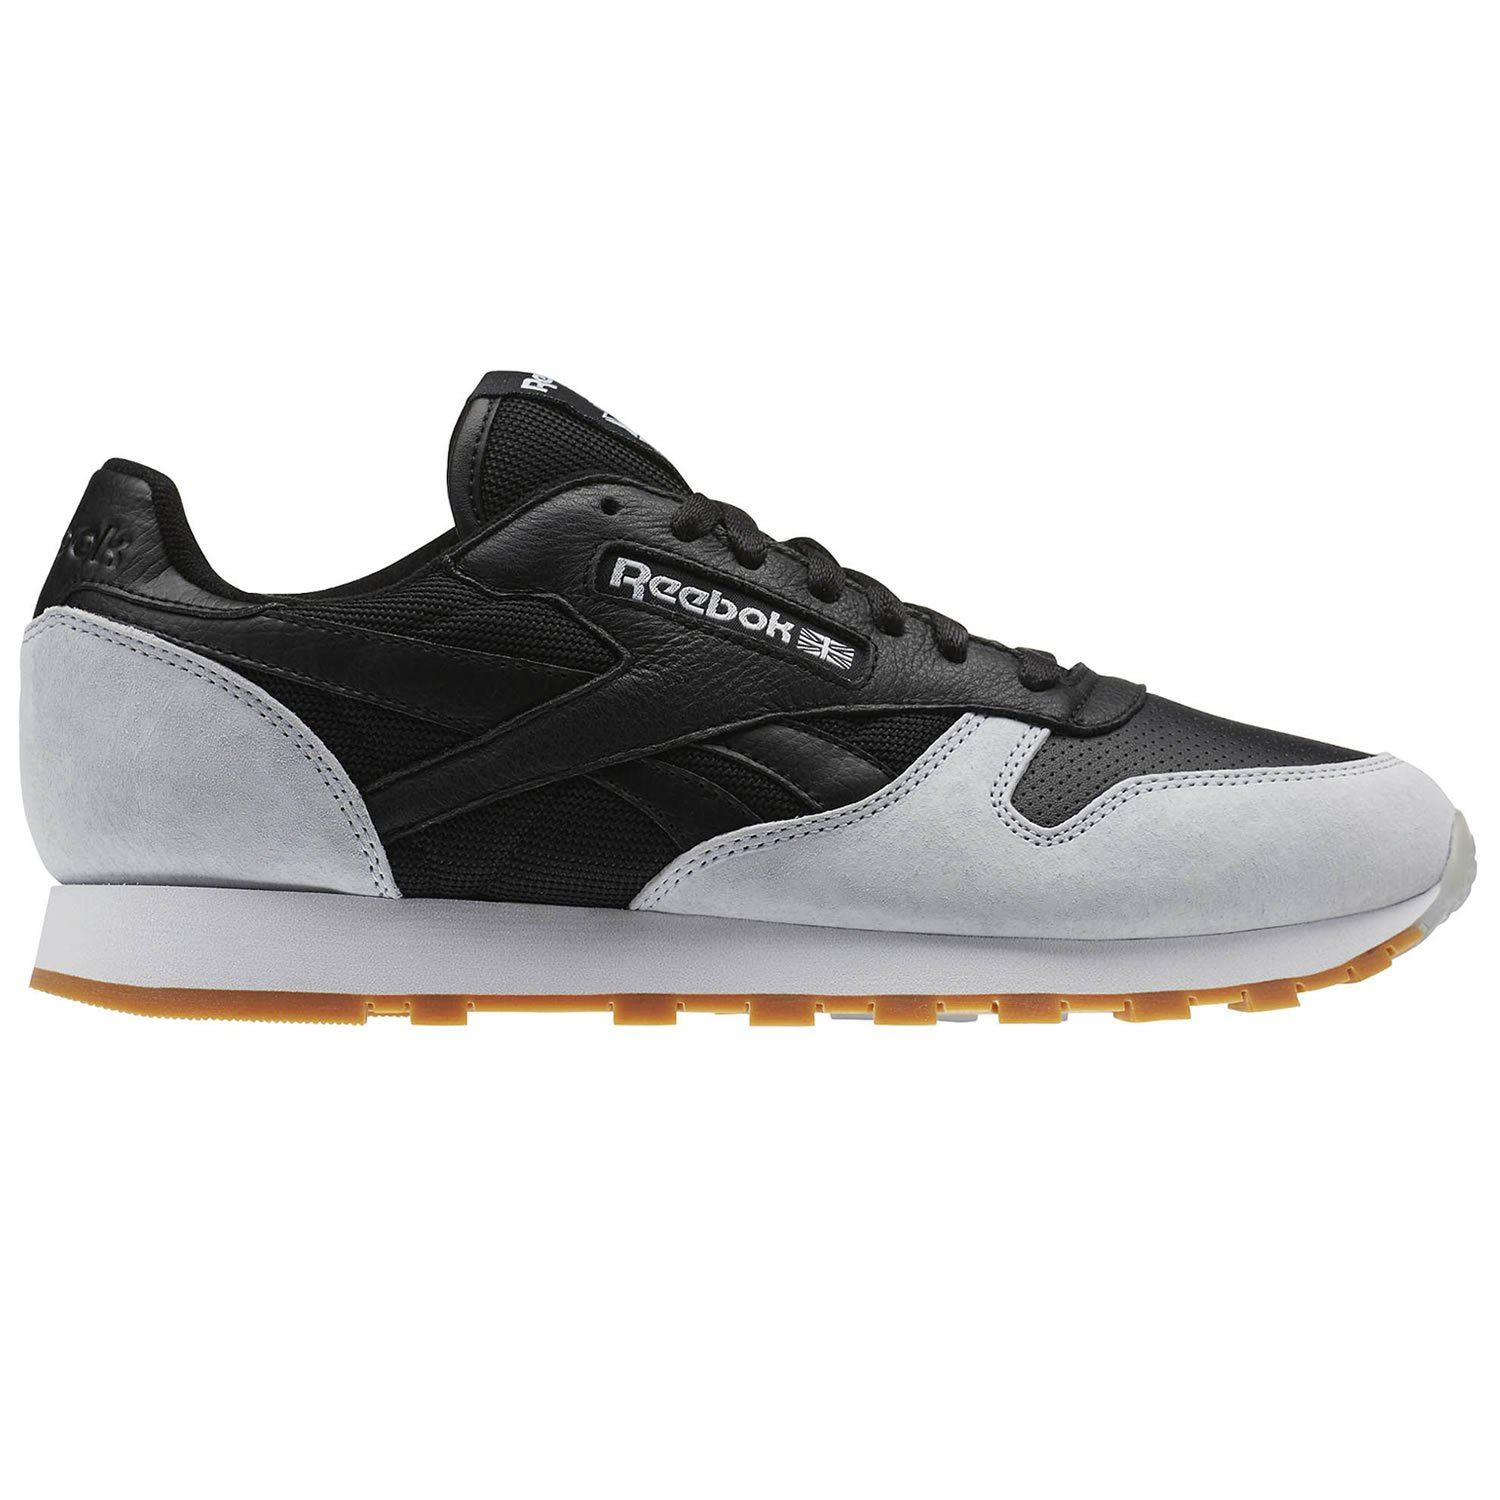 472bef58728 Details about REEBOK CLASSIC KENDRICK LAMAR LEATHER PERFECT SPLIT TRAINERS  SHOES SNEAKERS BNWT